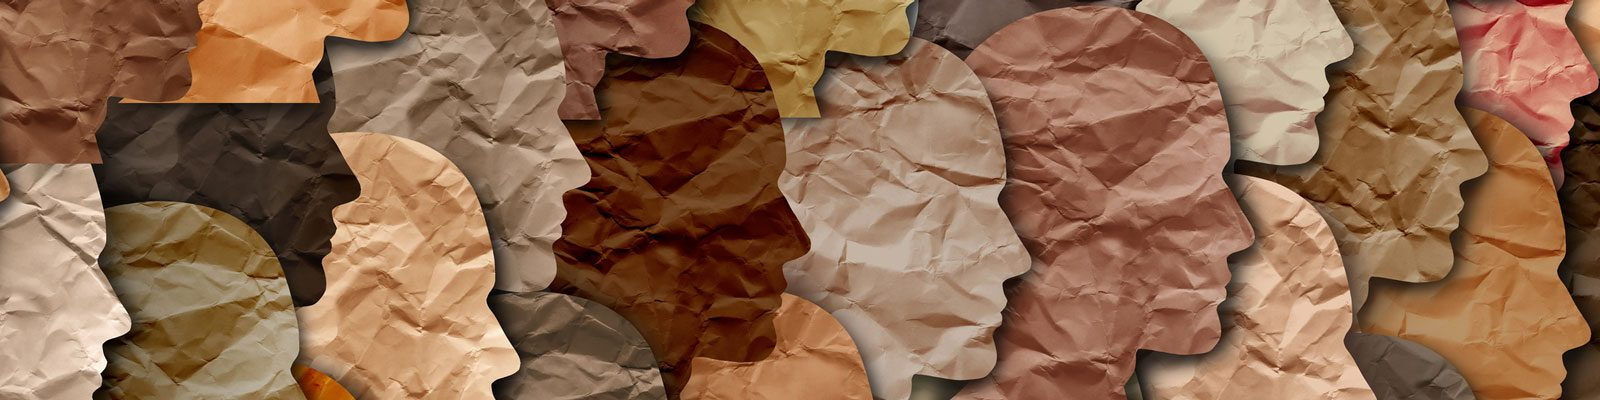 Collage of peoples profiles cut out of different colors of paper